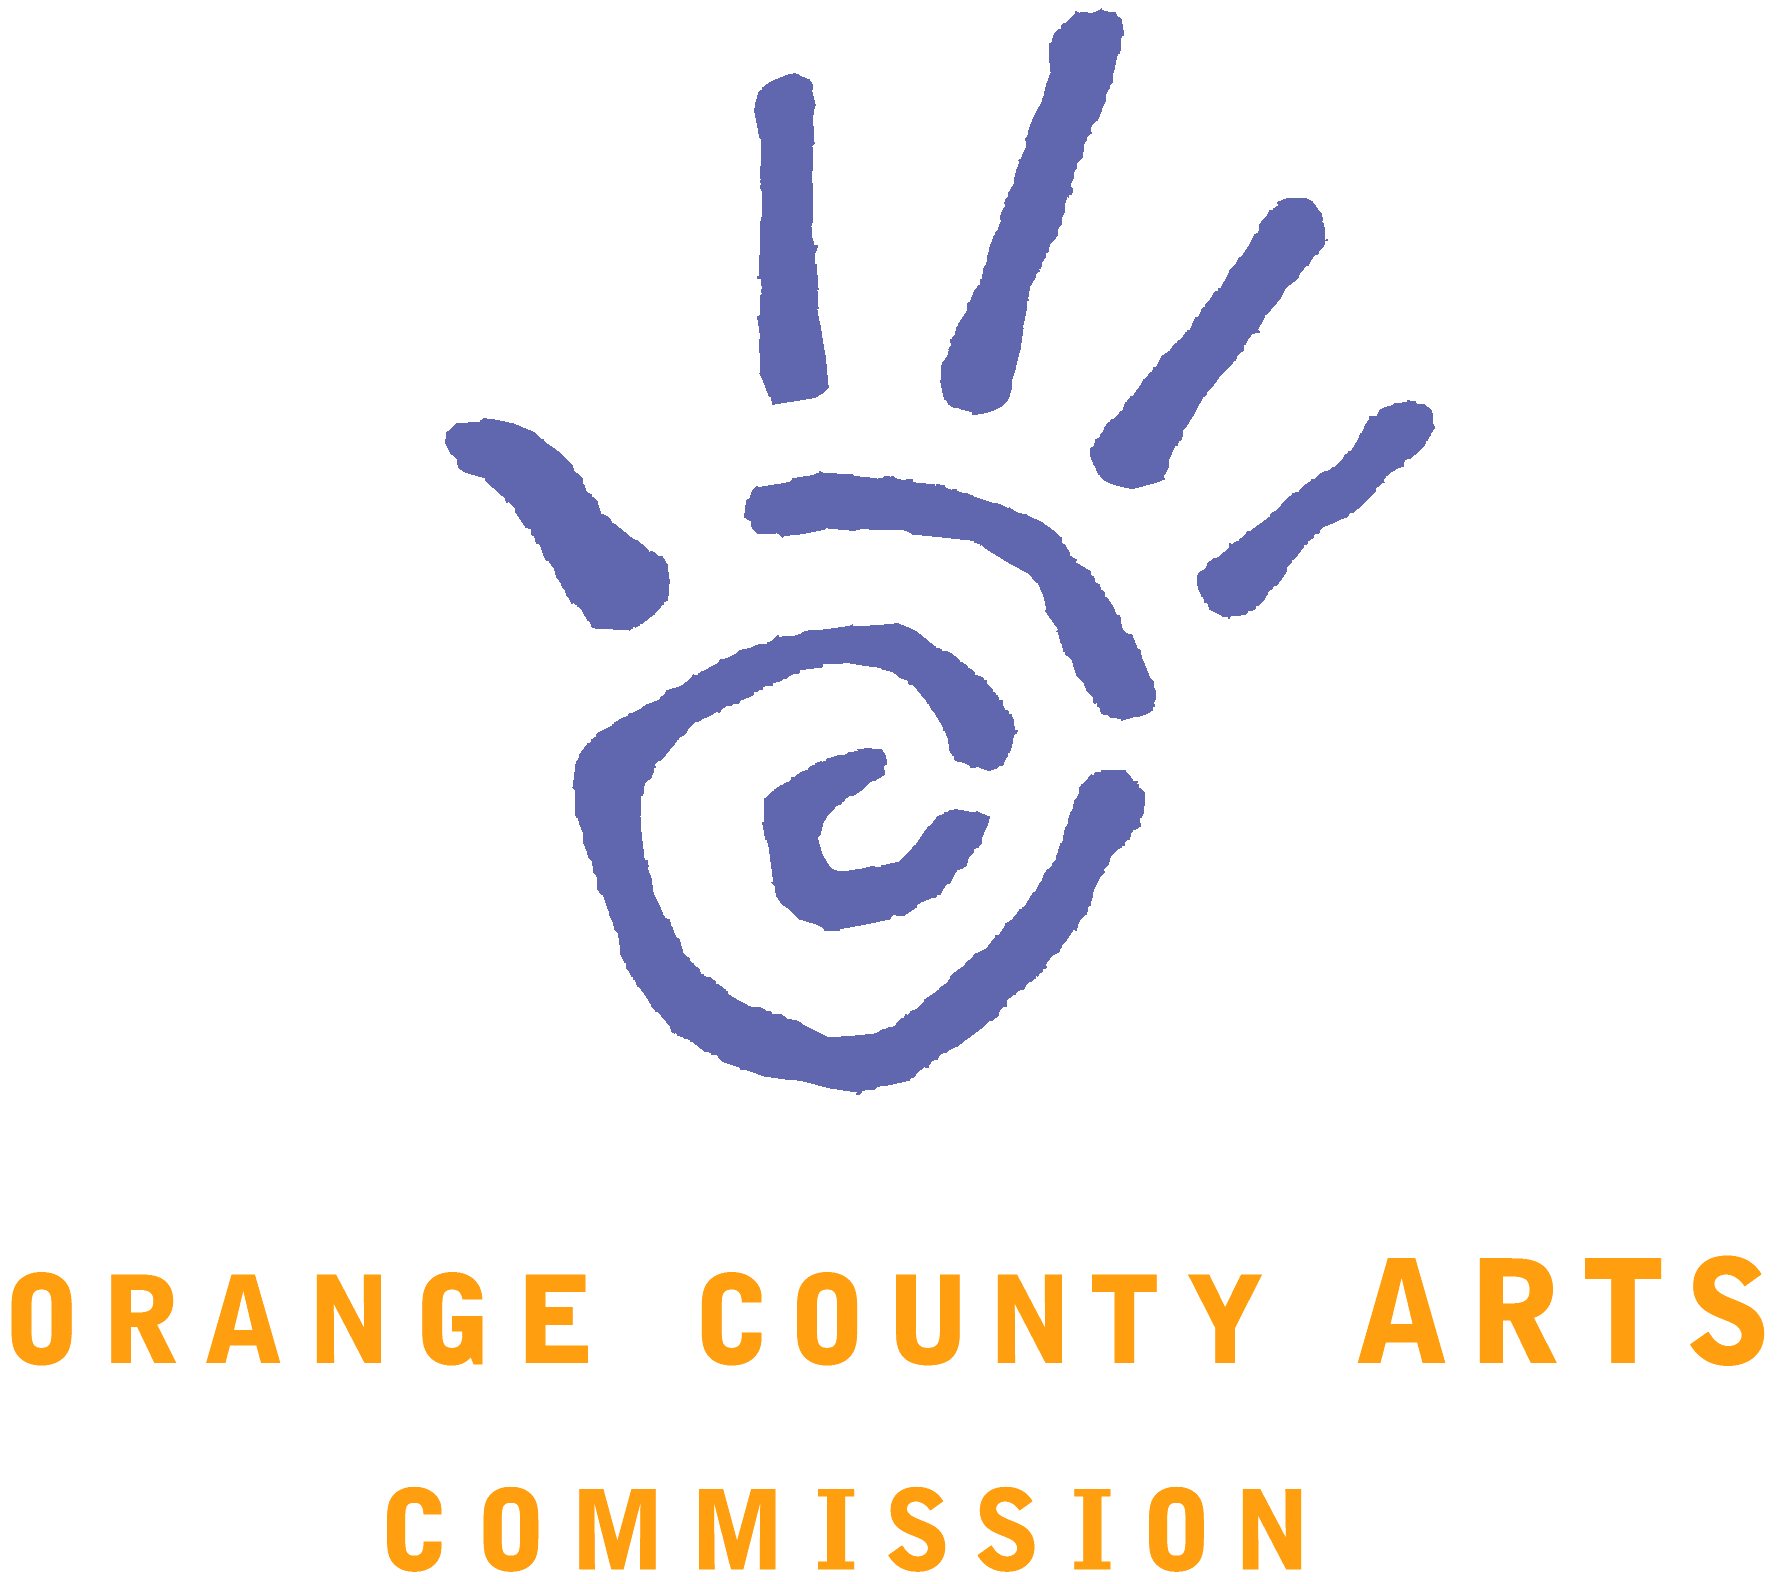 Orange County Arts Commission